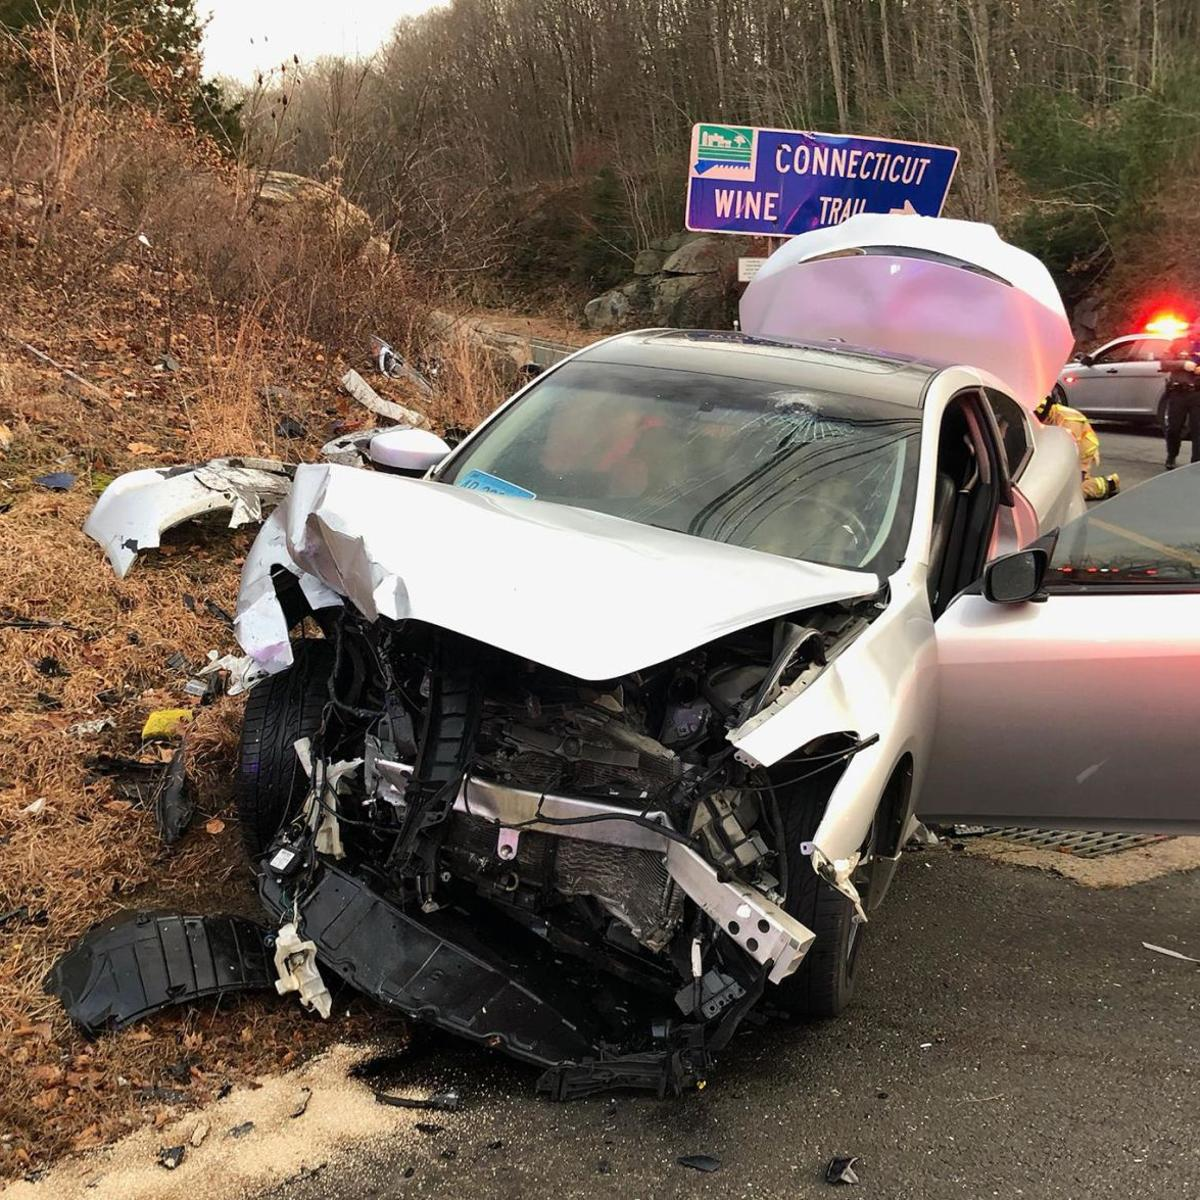 Driver attempting to evade police causes serious crash